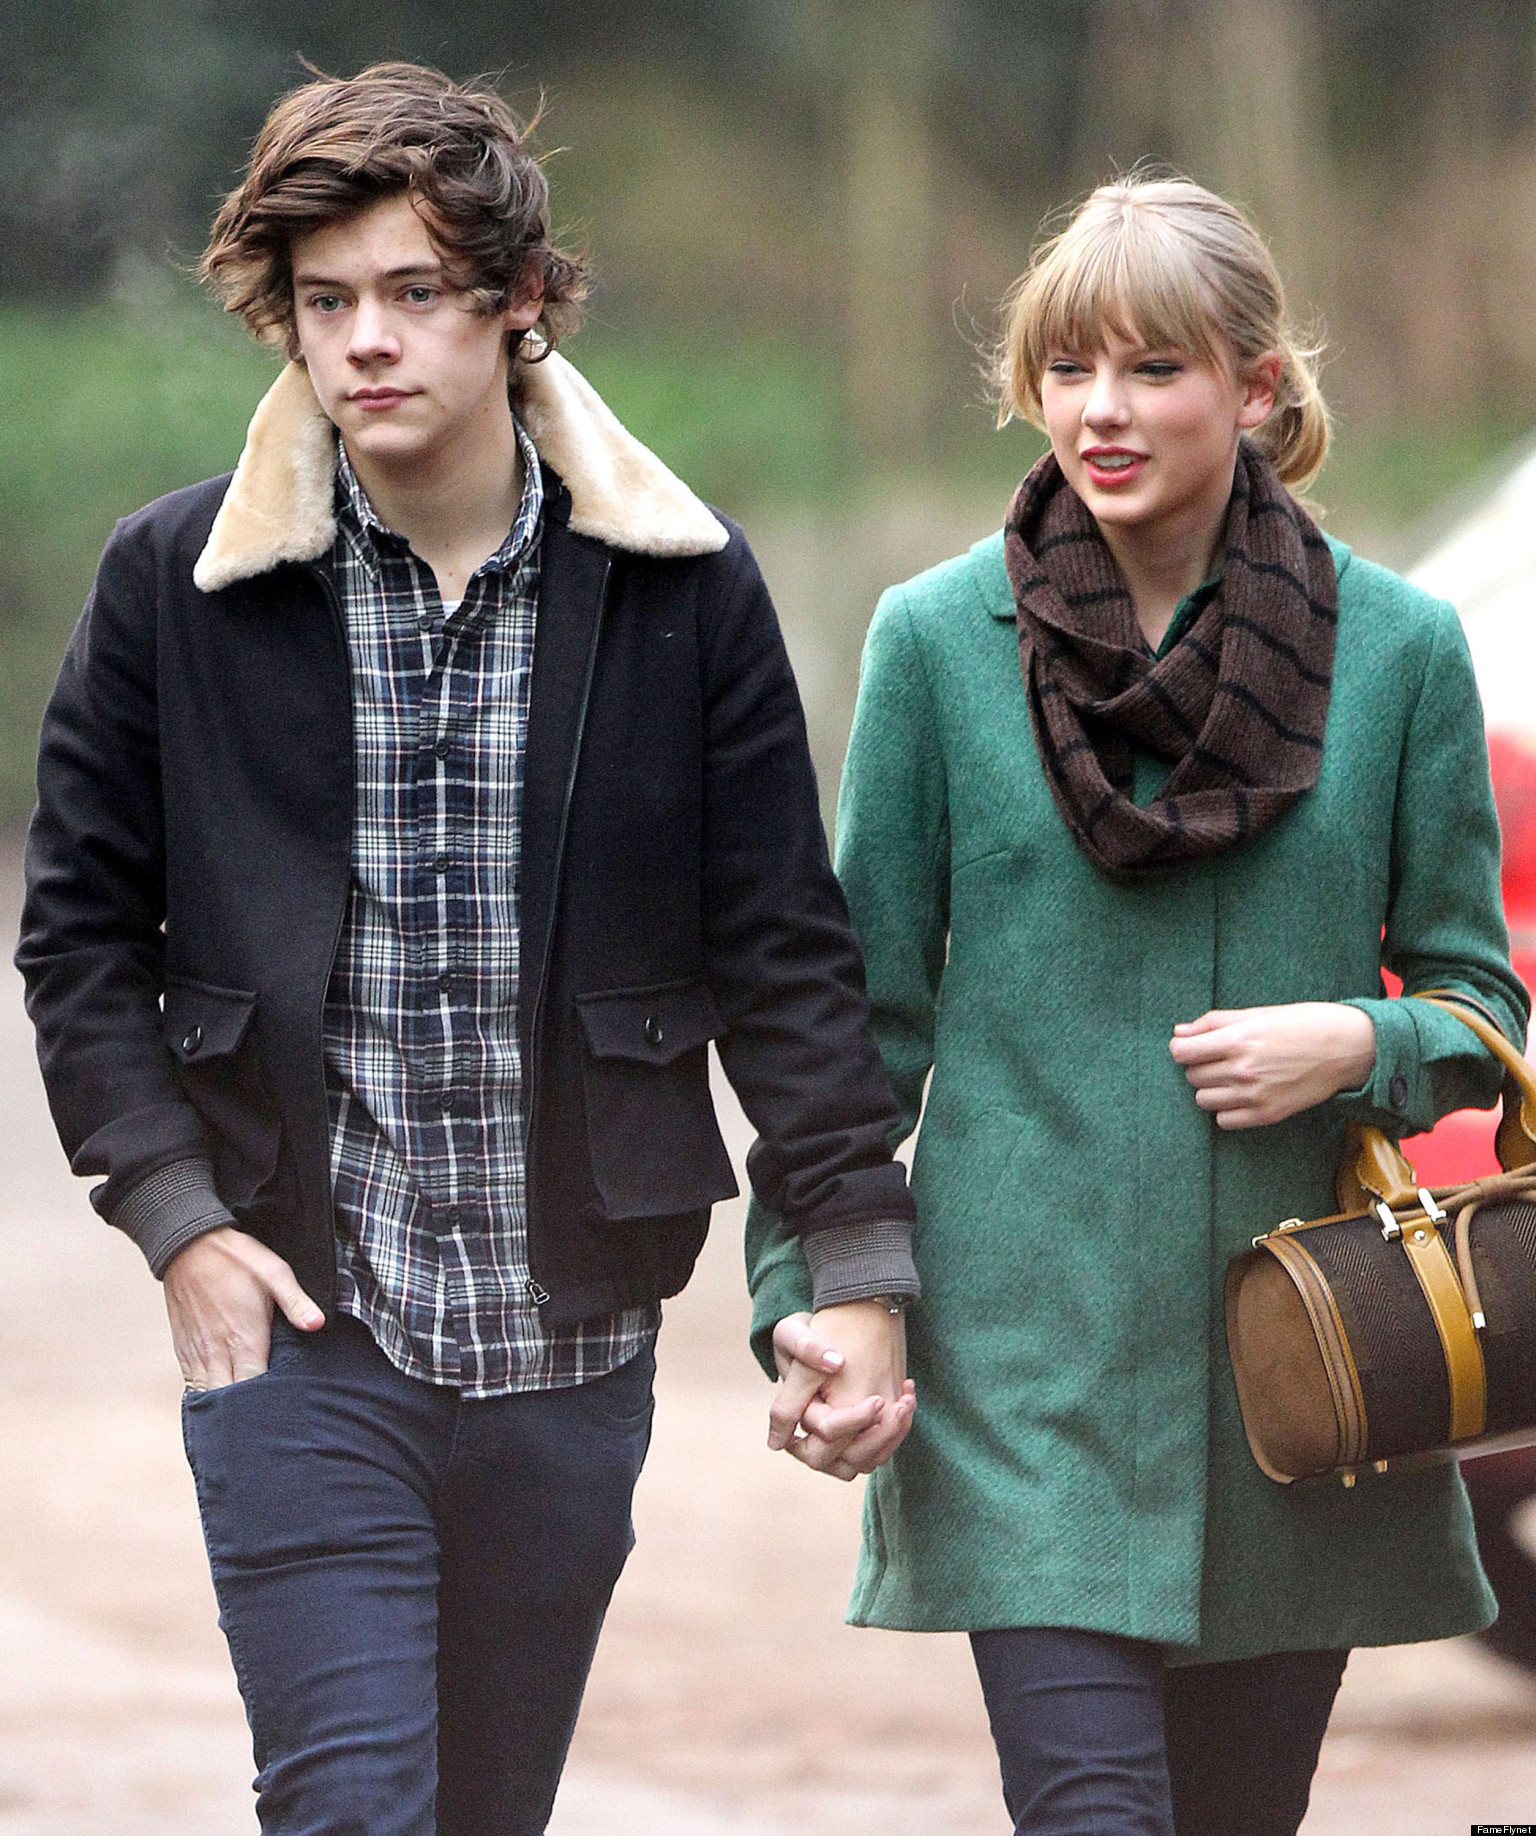 Taylor Swift and Harry Styles dated for a short period in 2013 ready for it